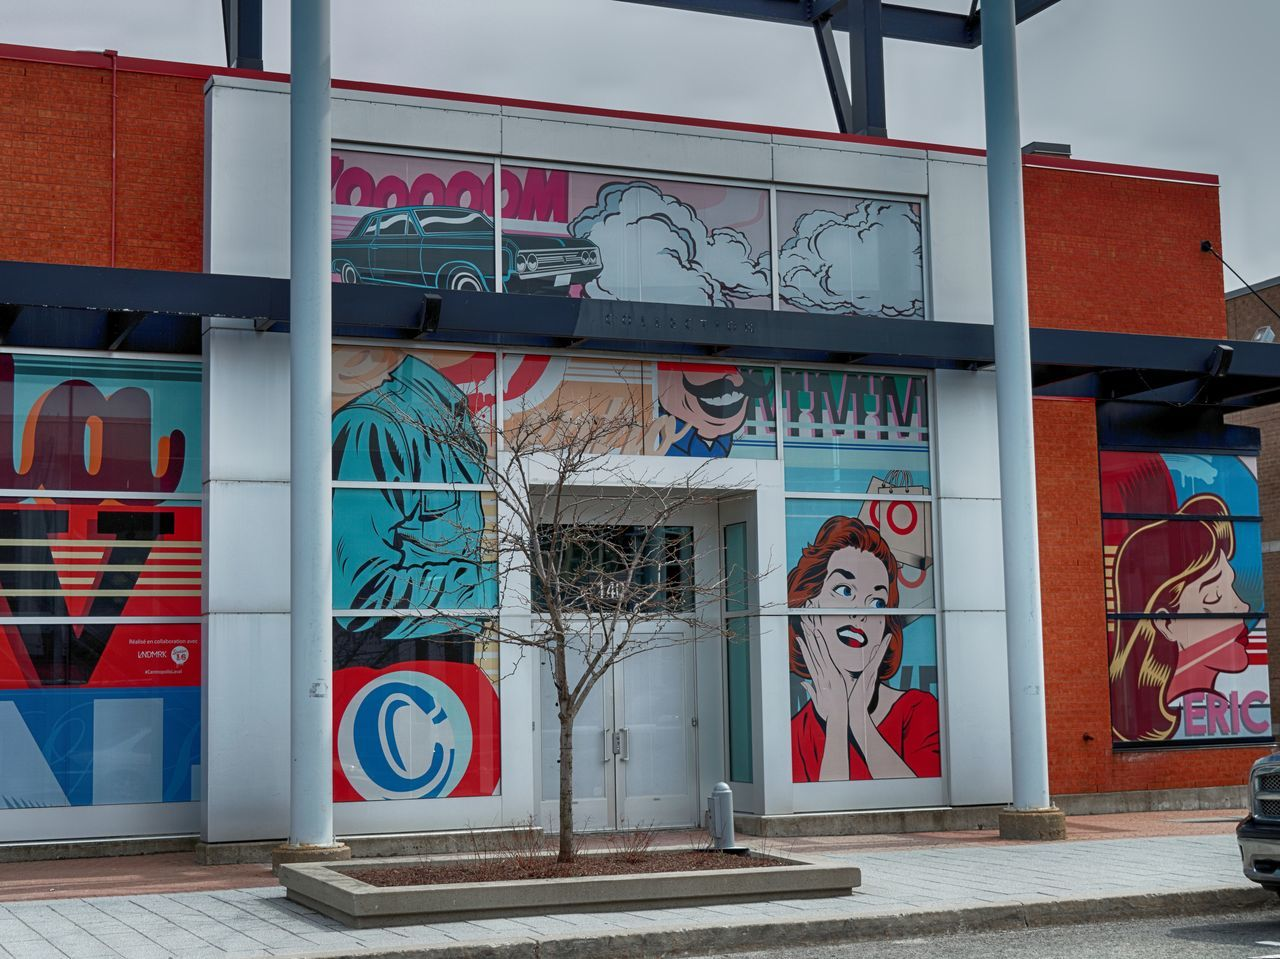 Architecture Building Exterior Built Structure Centropolis Day Design Graffiti Lifestyle Modern Multicolor No People Outdoors Pop Art Popart Red Shopping Street Photography Urban Exploration